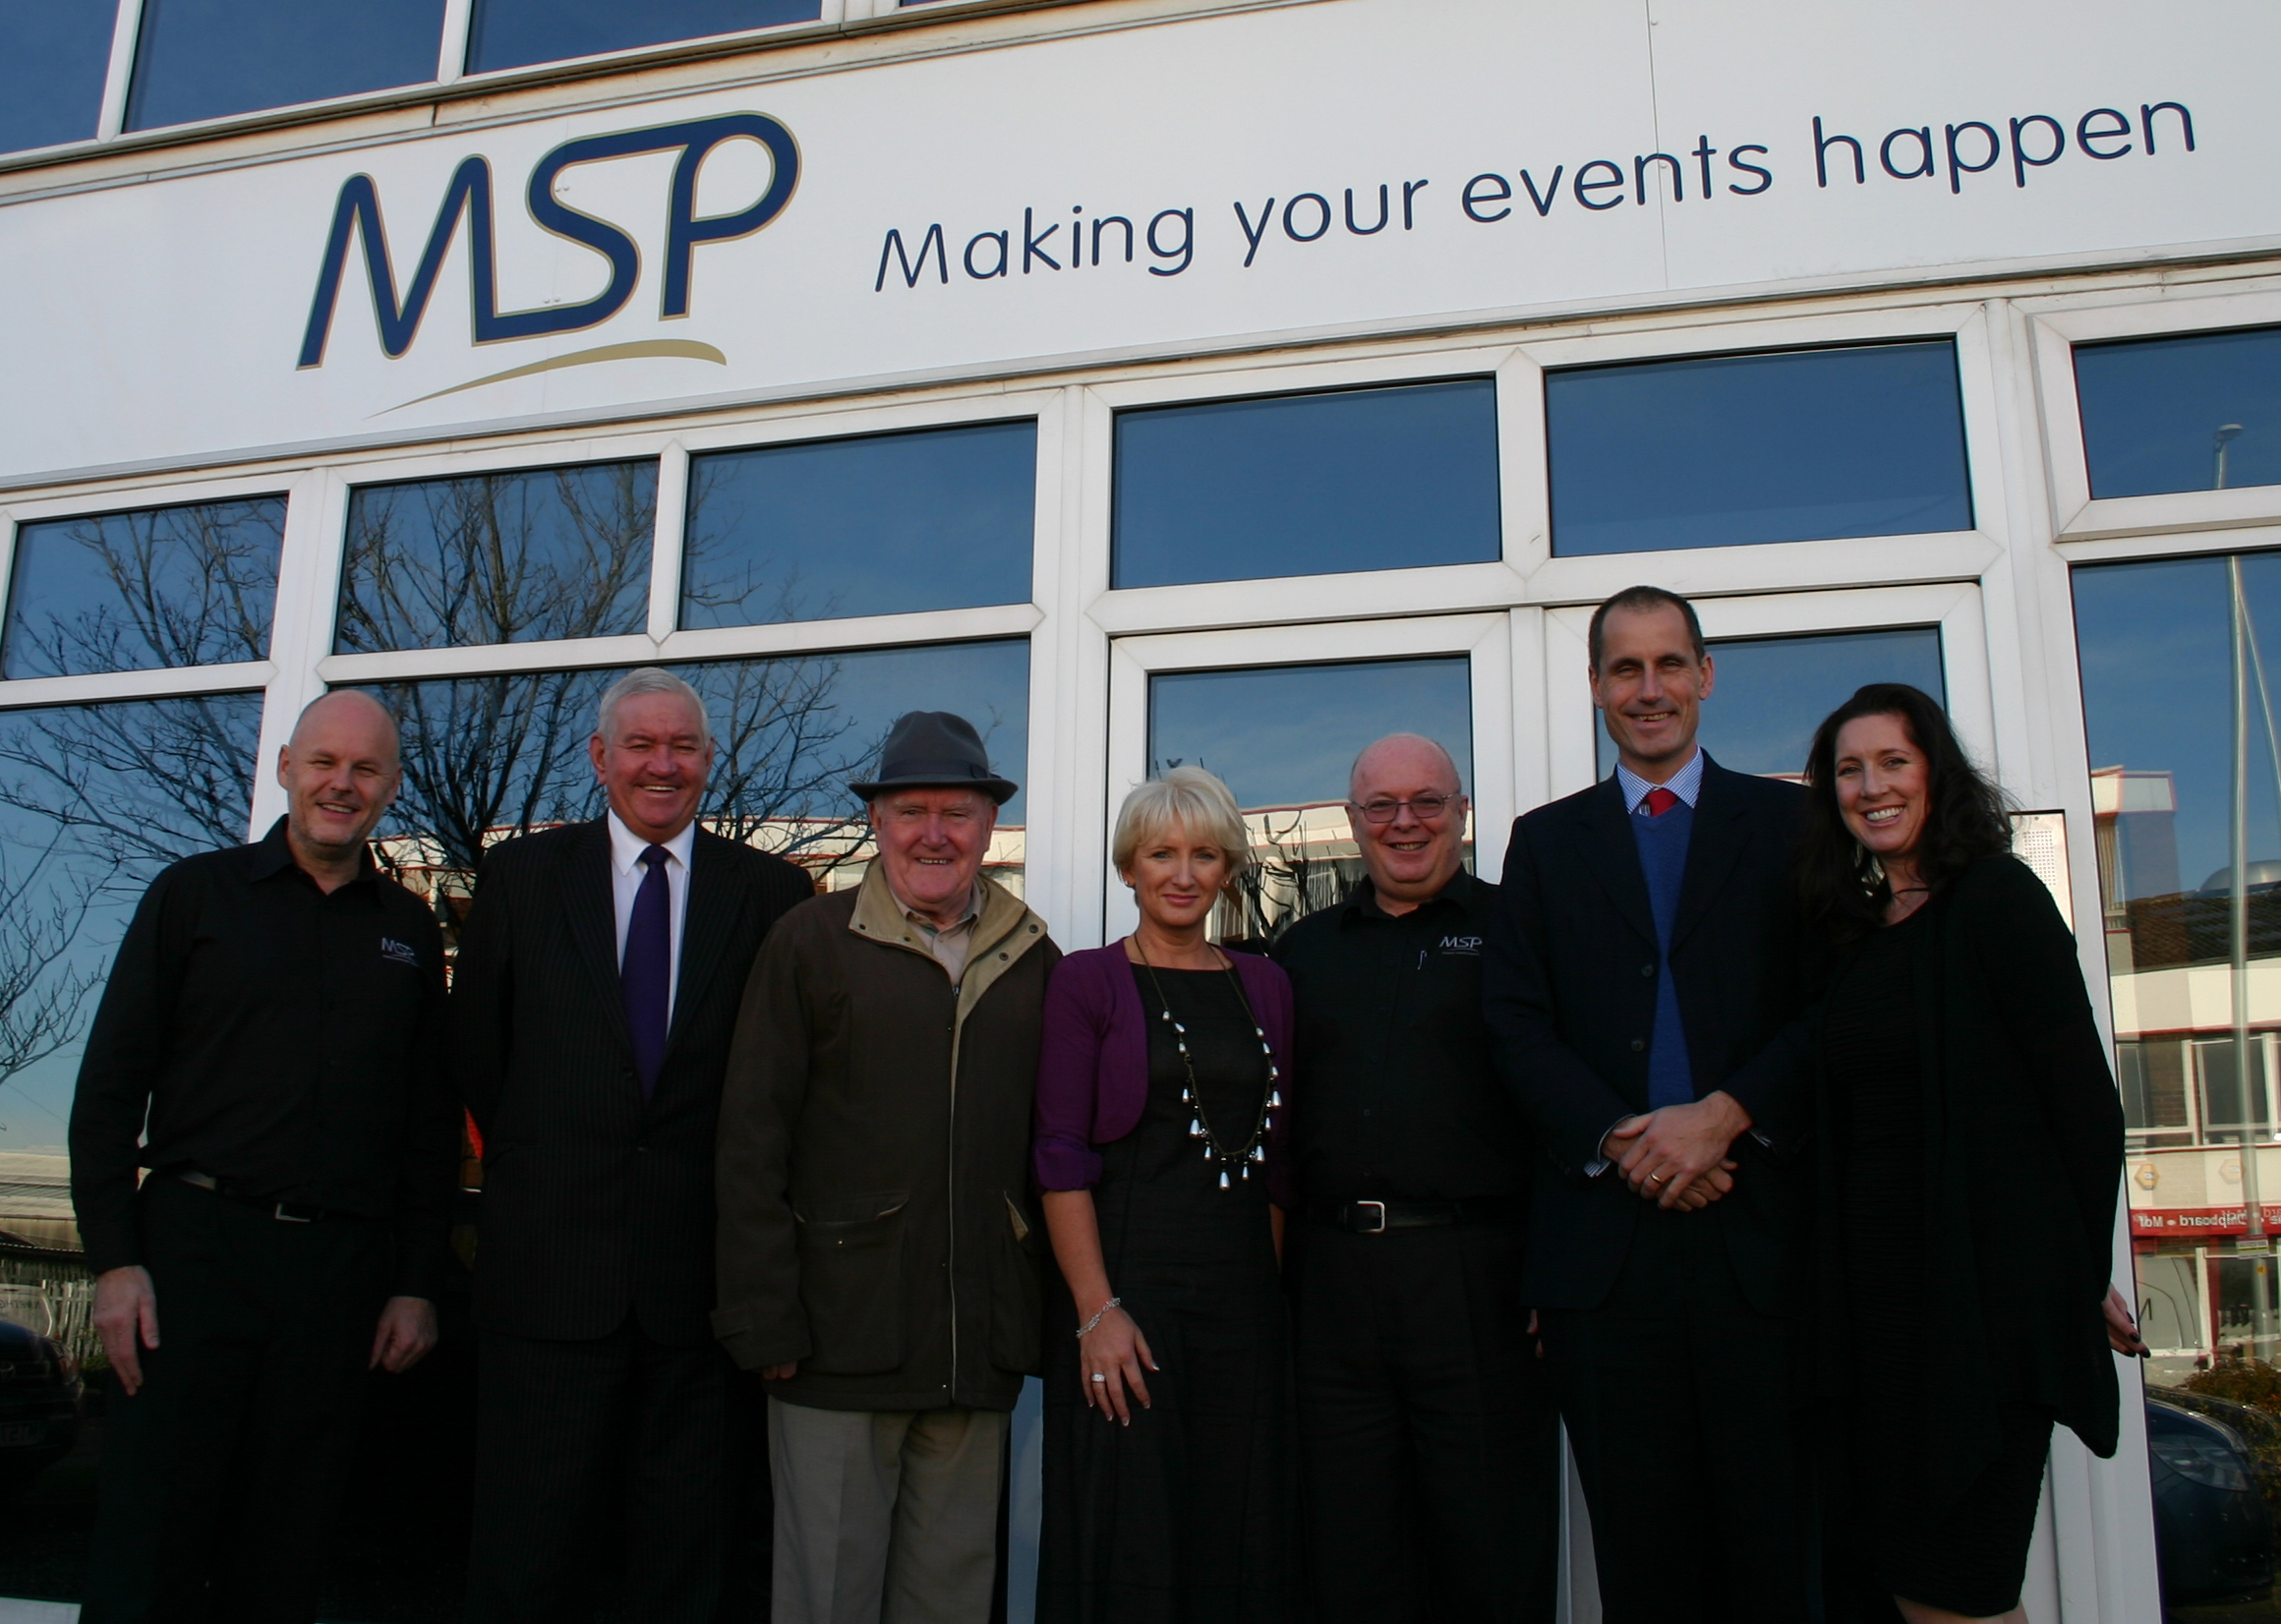 Sefton Central Labour MP Bill Esterson with Labour Councillors Mark Dowd and Jimmy Mahon, MSP's Colin Reader, Lisa Richards and staff.